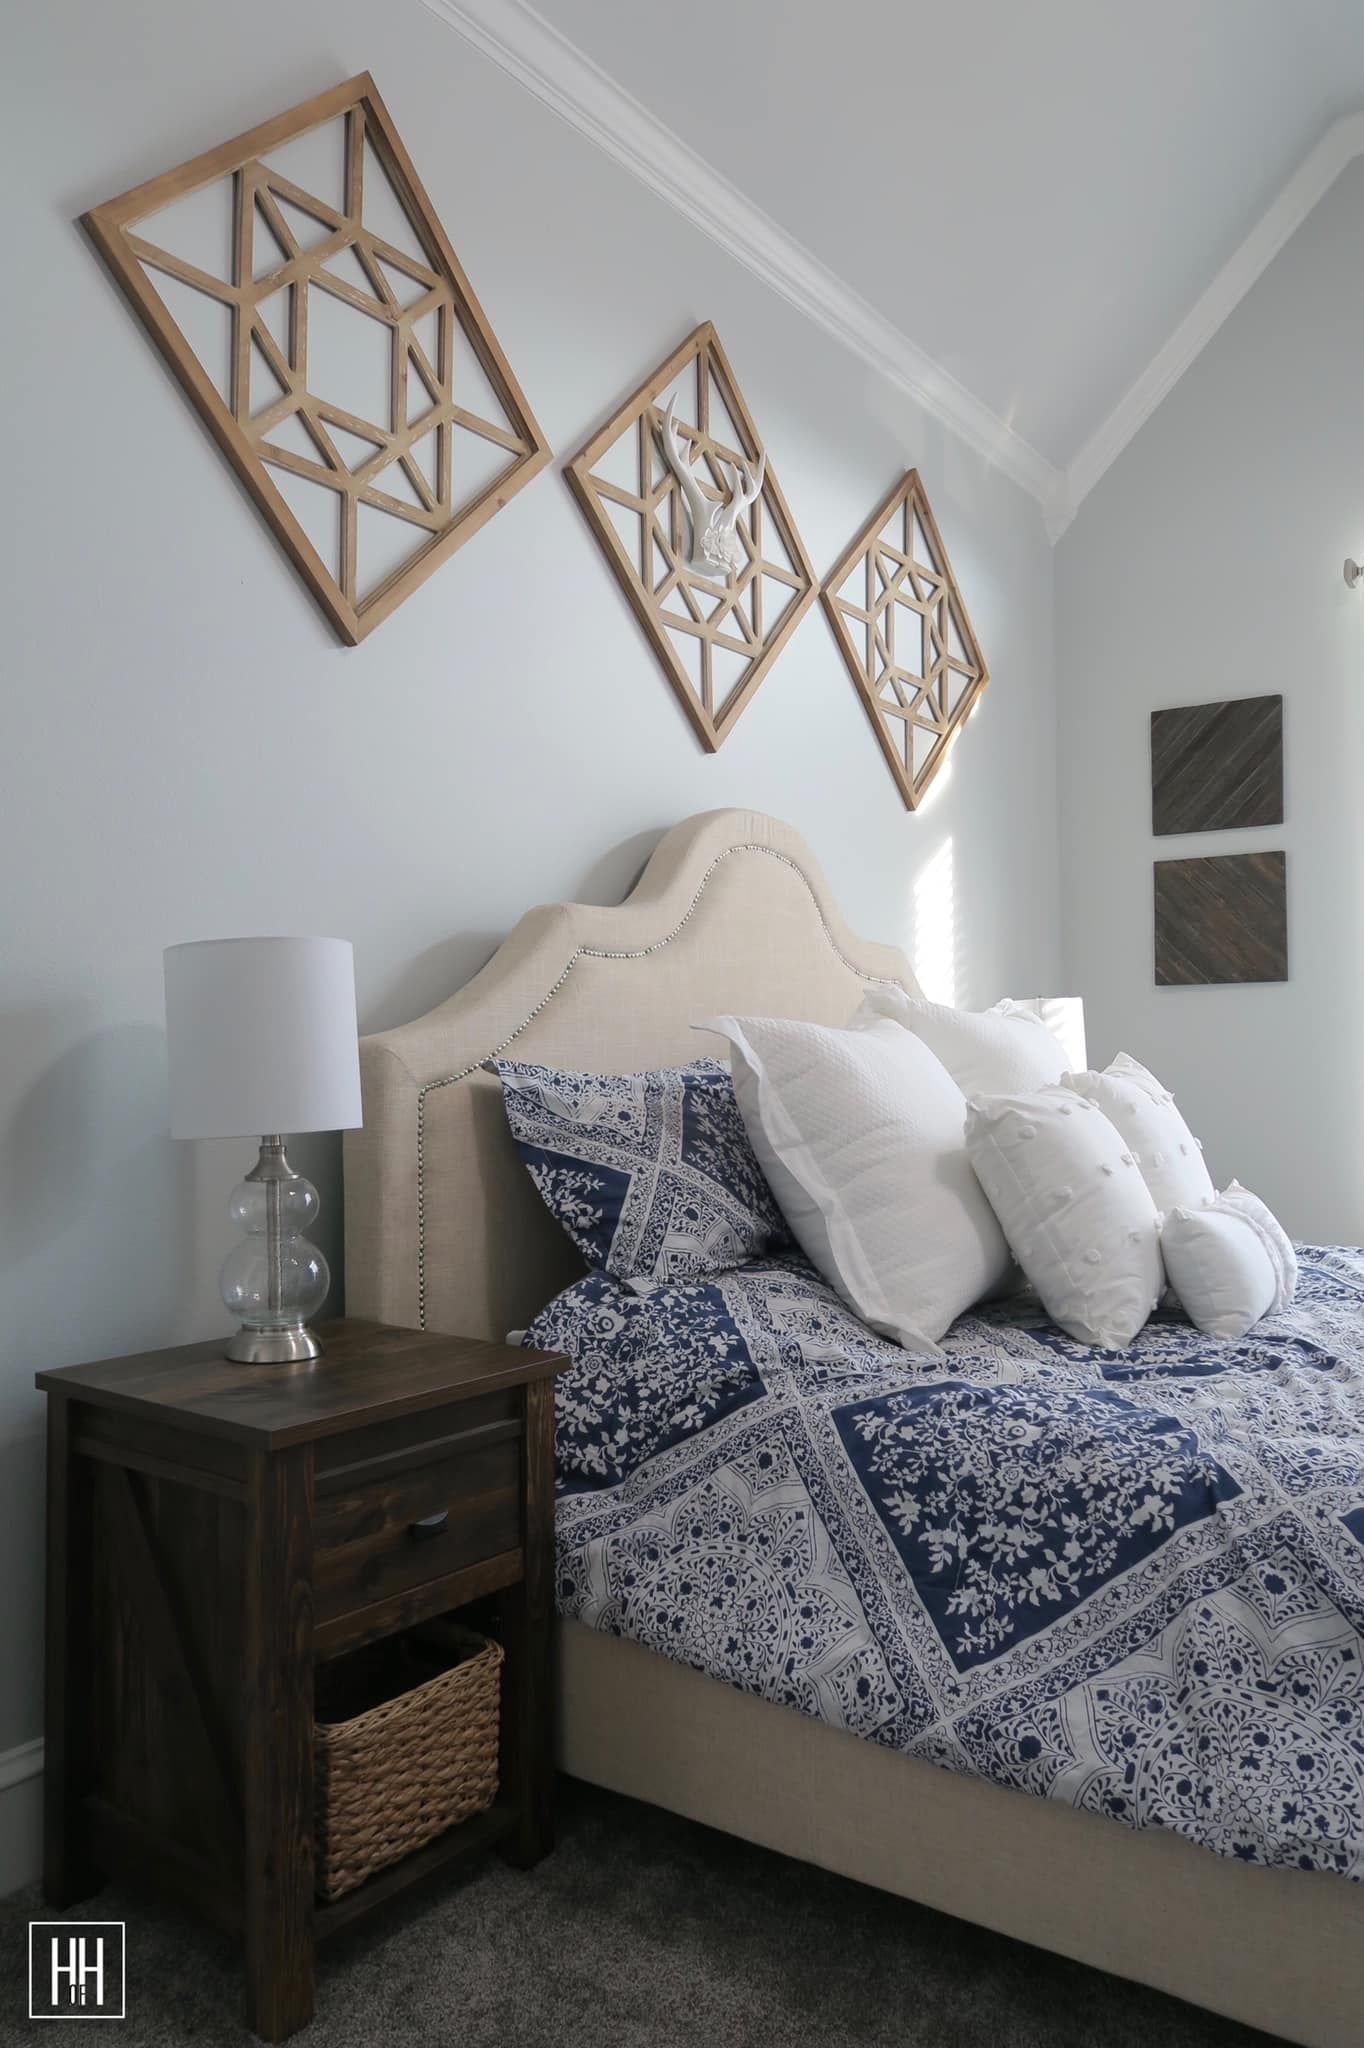 Wall Hangings for Bedroom Beautiful Transitional Modern Farmhouse Master Bedroom Headboard